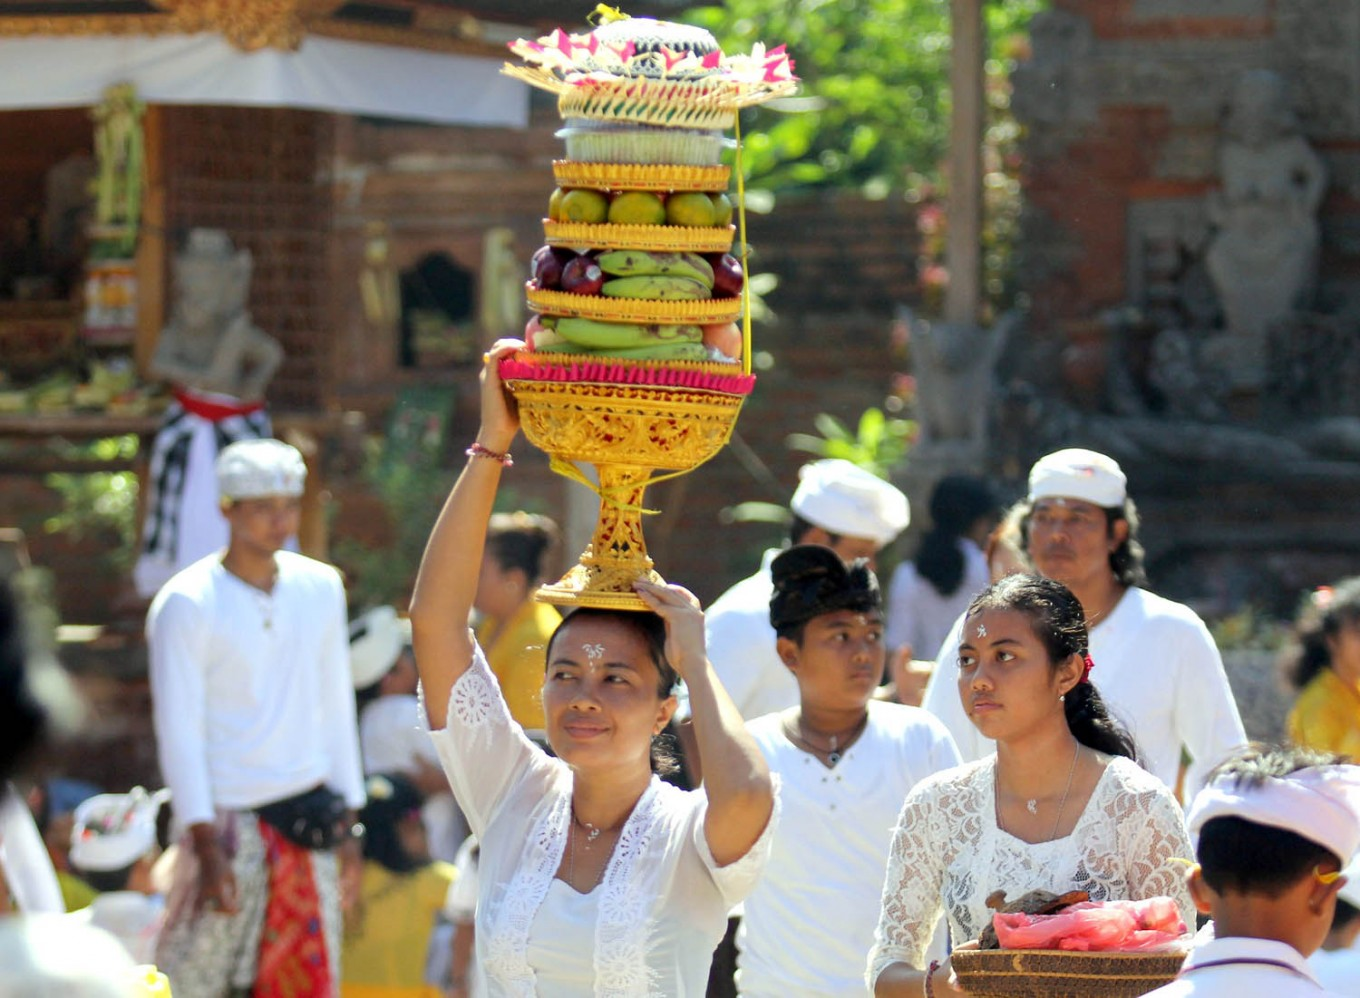 Several Balinese women carry offerings to the Pura Jagatnatha Temple as part of the Galungan Festival in Denpasar, Bali, on Sept. 7. The Galungan Festival is celebrated by Hindus as a victory of good (Dharma) over evil (Adharma). JP/Zul Trio Anggono